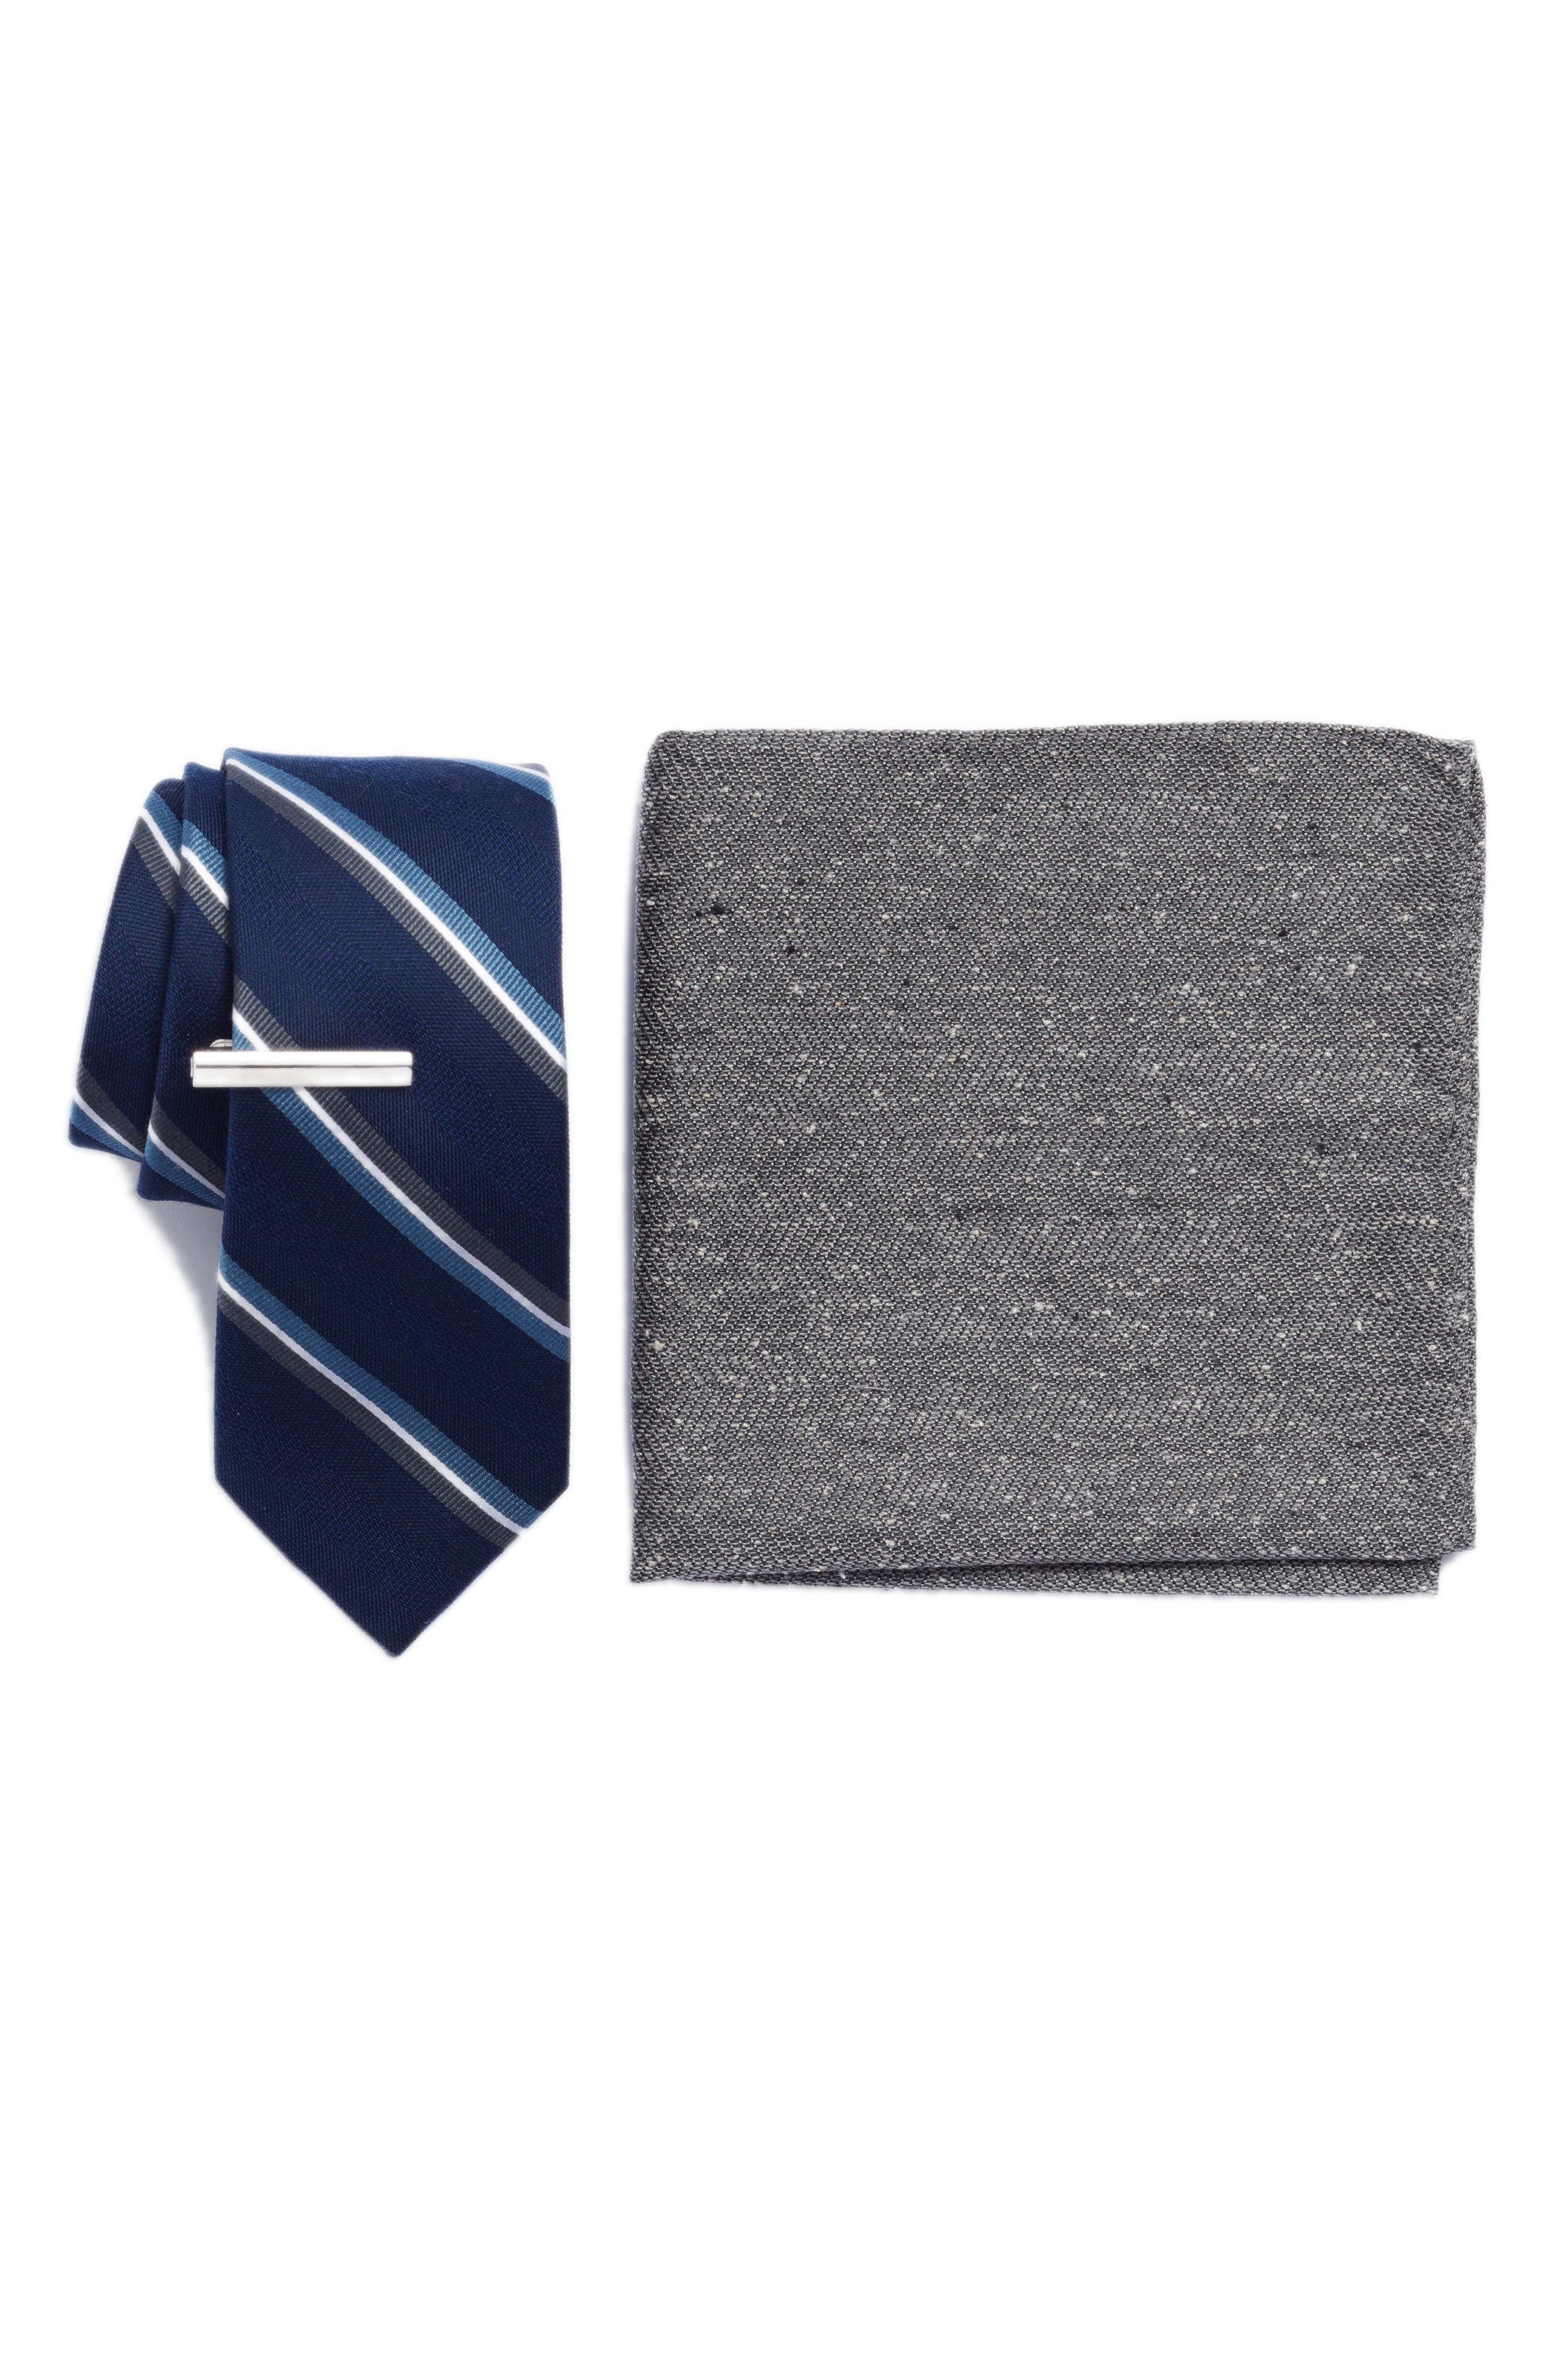 Short Cut Stripe 3-Piece Skinny Tie Style Box,                         Main,                         color, Navy